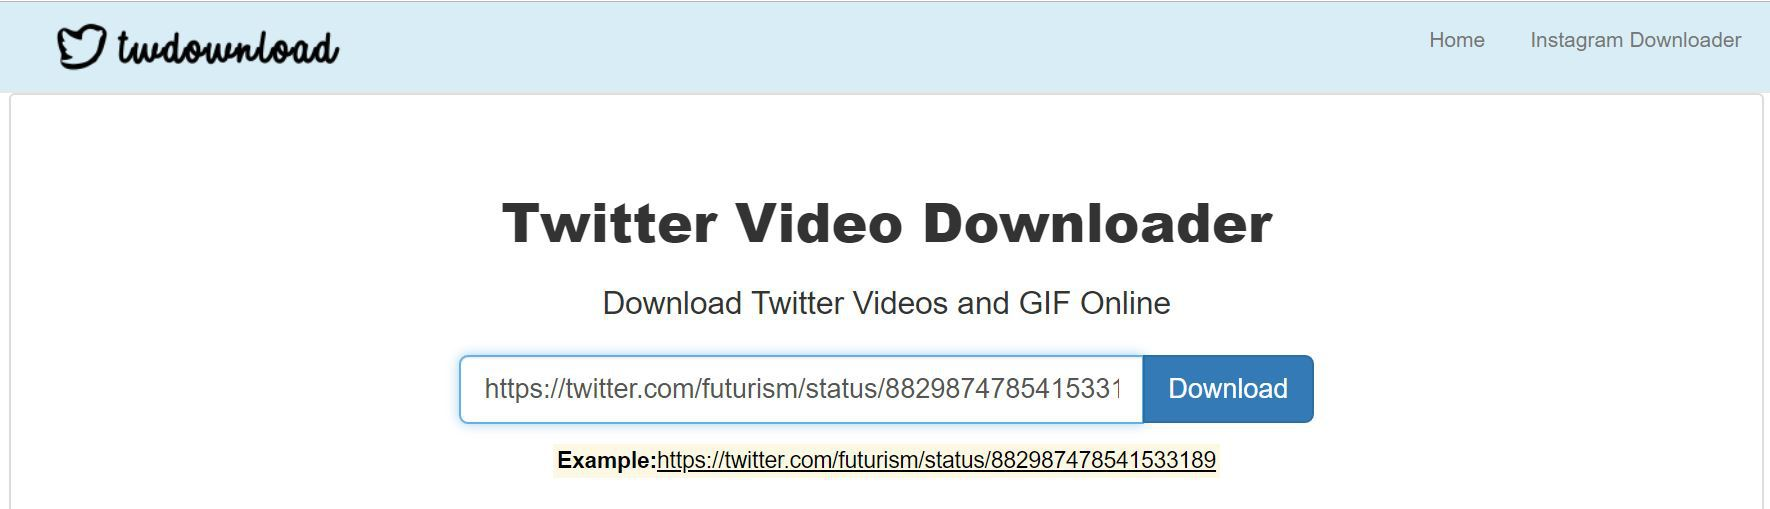 How to Save Animated GIFs from Twitter? 14